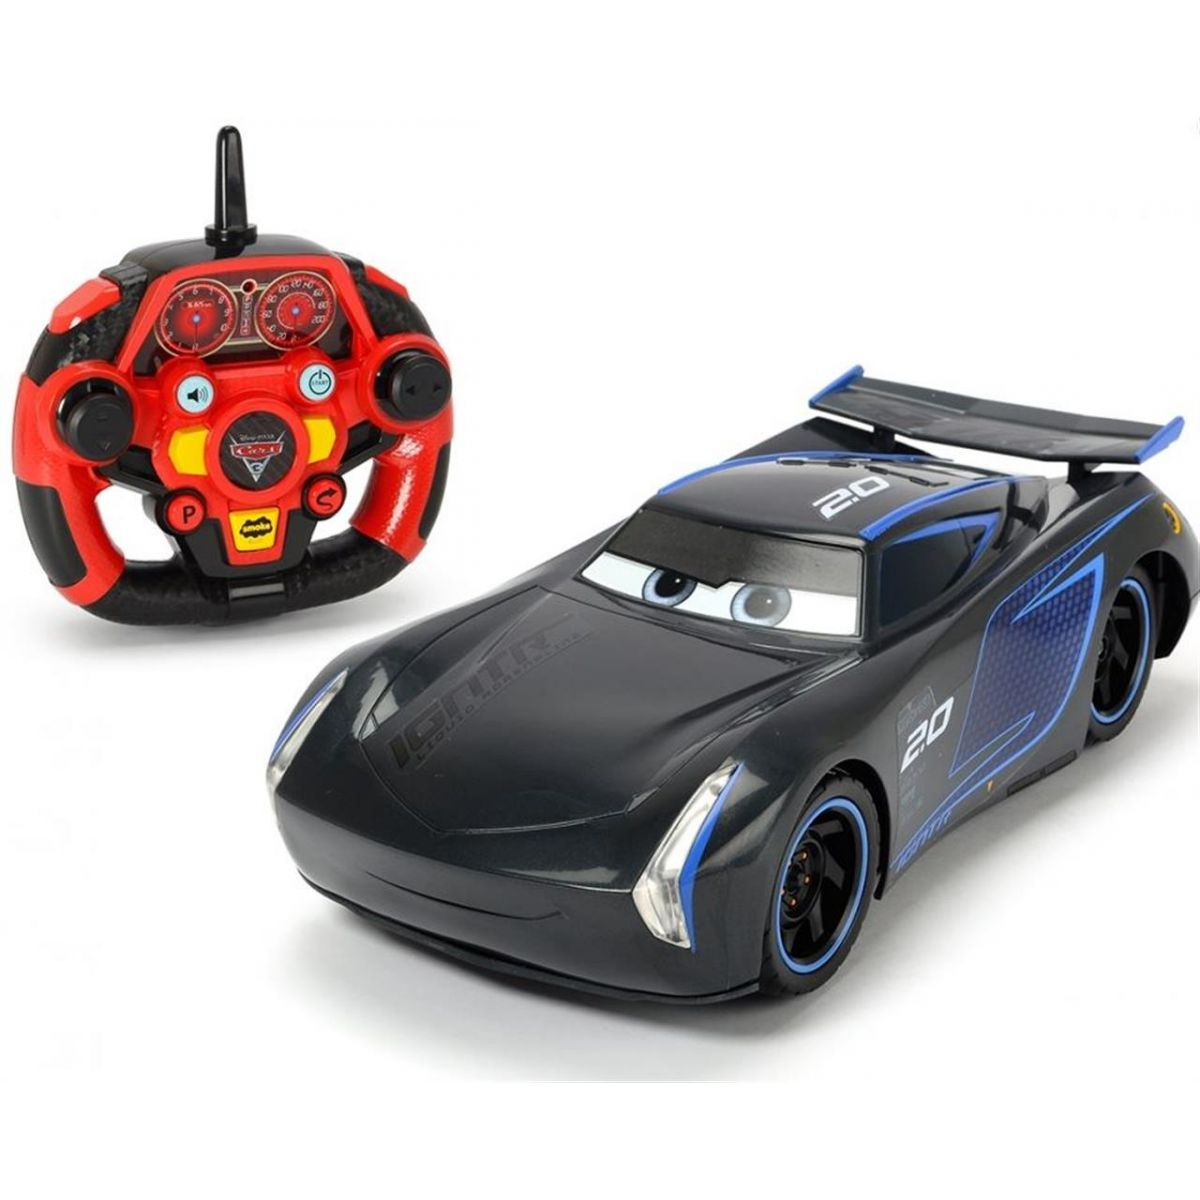 Dickie RC Cars 3 Ultimate Jackson Hrom 1:16